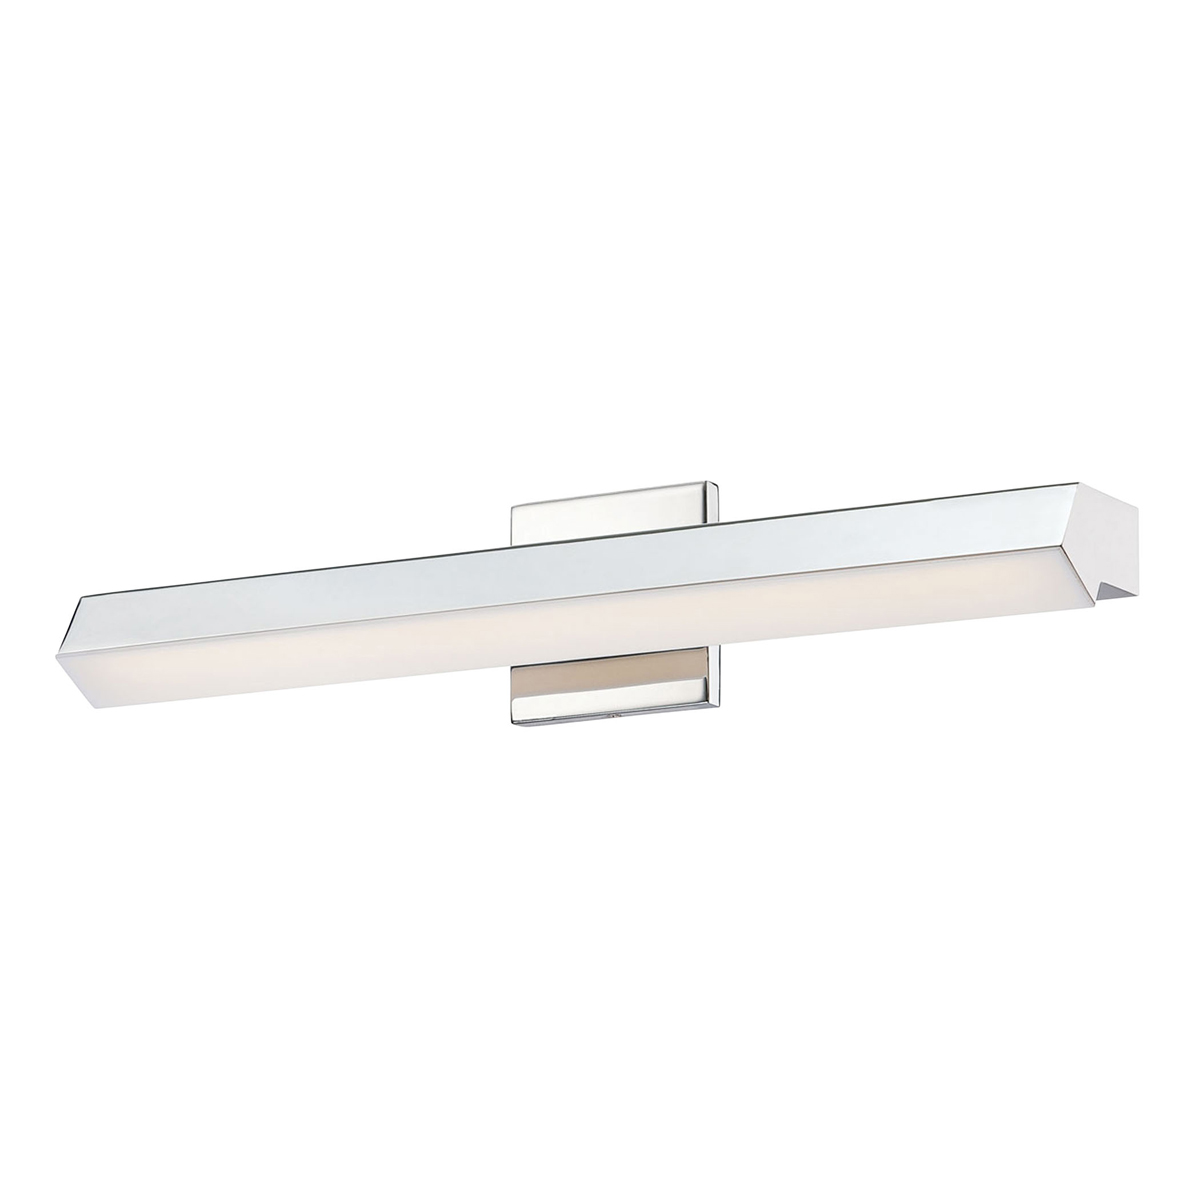 Vanity Led Fixtures : Alico Lighting (WSL100-10-15) Yarmouth 1 Light LED Vanity Fixture in Chrome